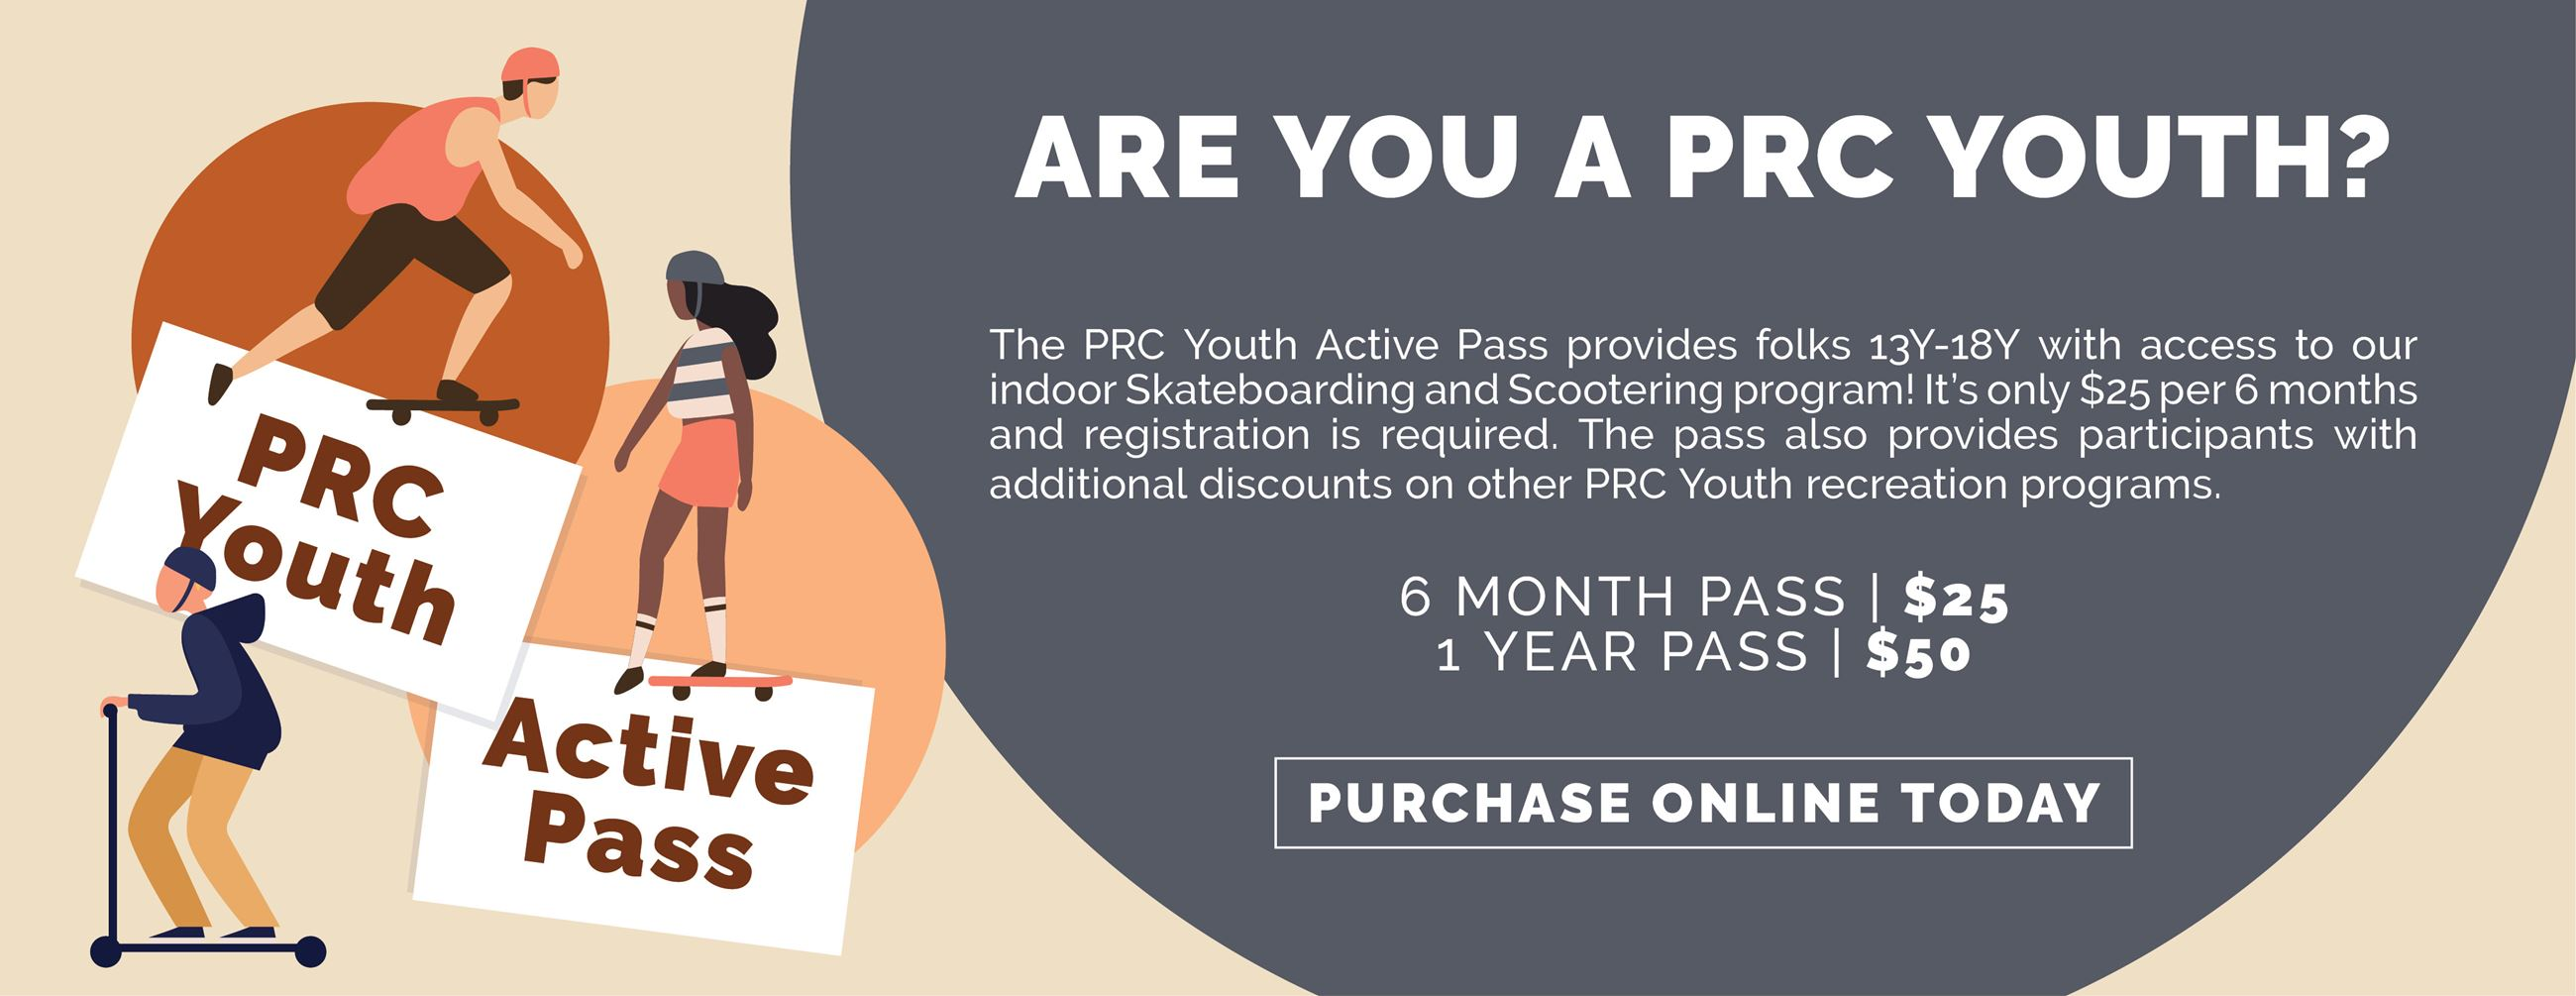 Youth_ActivePass_ButtonBanner